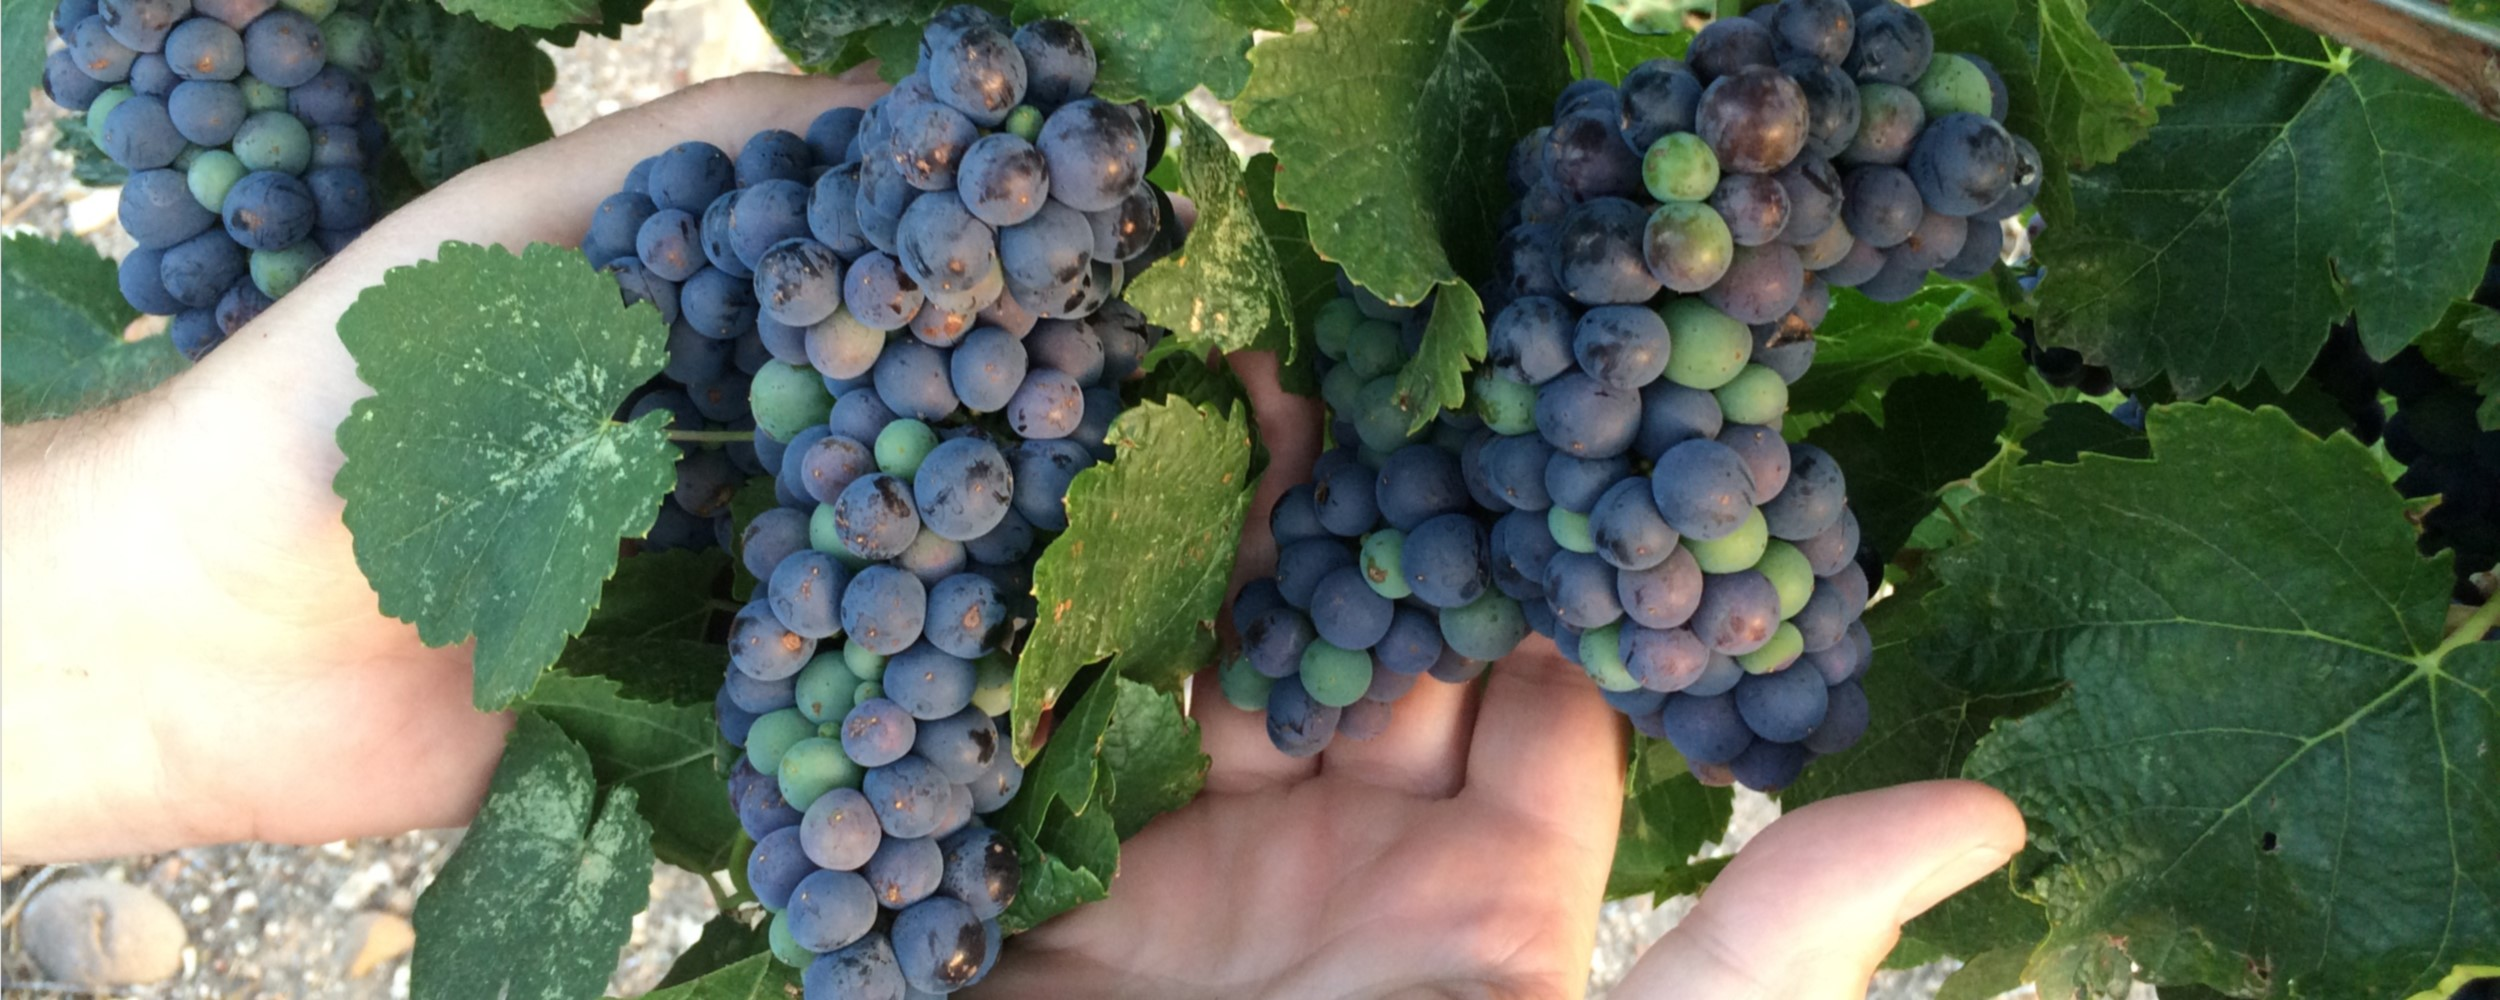 Home - Grapes_Hands - 2500x1000